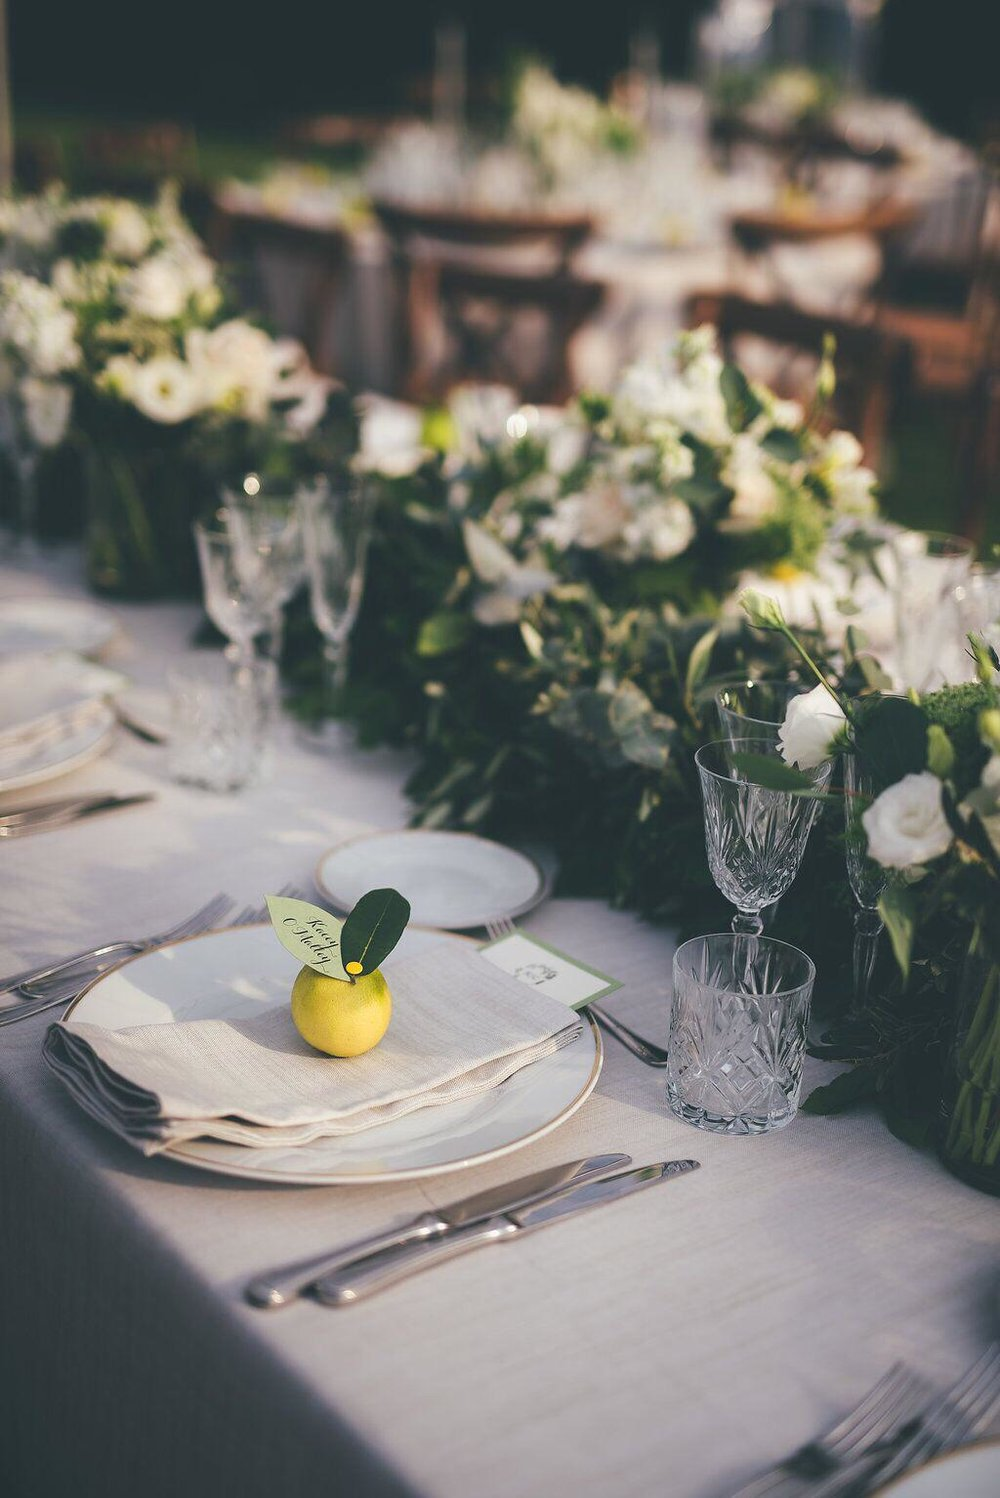 Specialised and experienced catering services in Chandigarh and Mohali  | Red Tag Caterers | BEST CATERERS IN CHANDIGARH AND MOHALI, BEST CATERING SERVICE IN CHANDIGARH, TOP CATERER IN CHANDIGARH, EXPERIENCED CATERERS IN CHANDIGARH  - GL79925